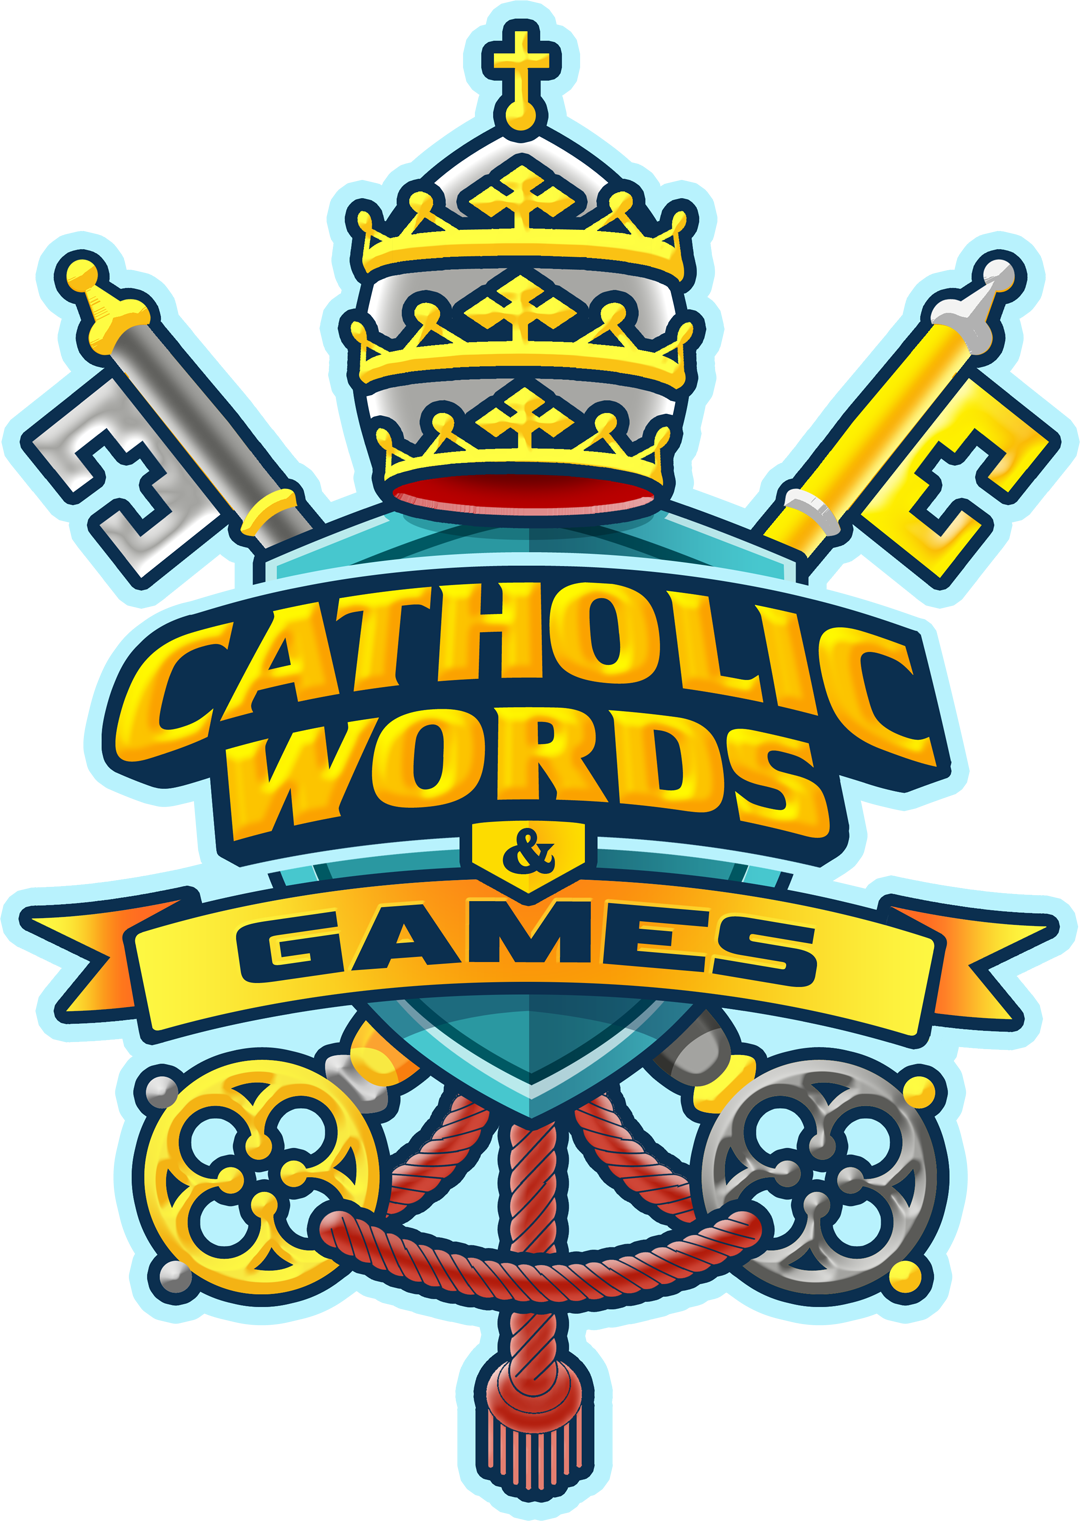 Games clipart memory game. Catholic words app review